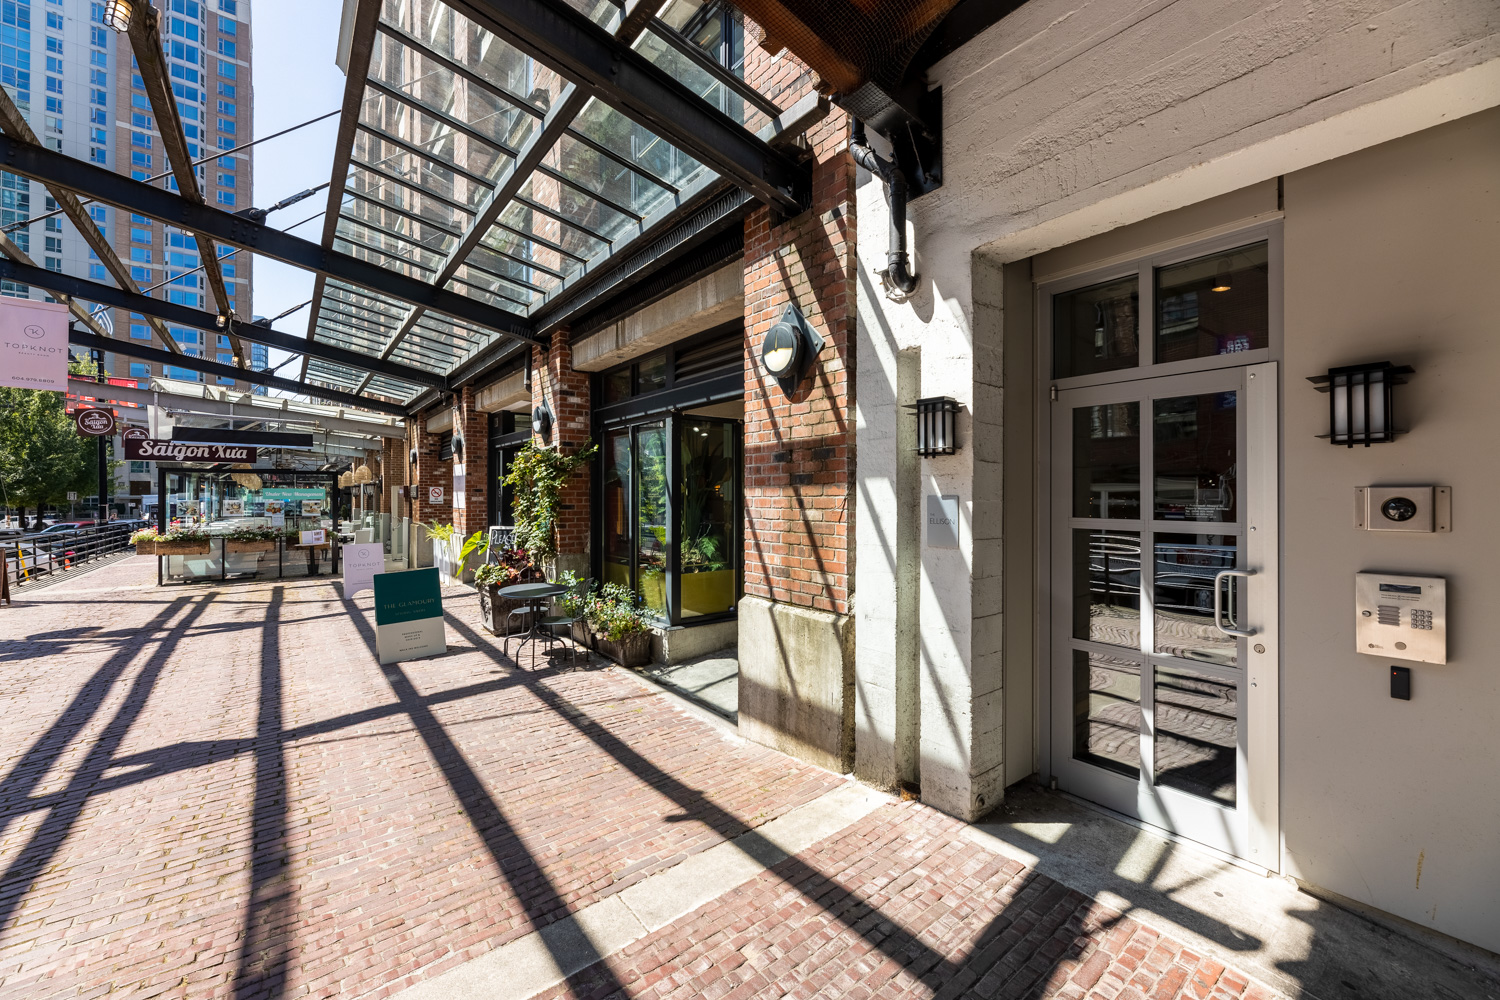 Yaletown Loft district with cobble streets and restored beautiful architectural buildings